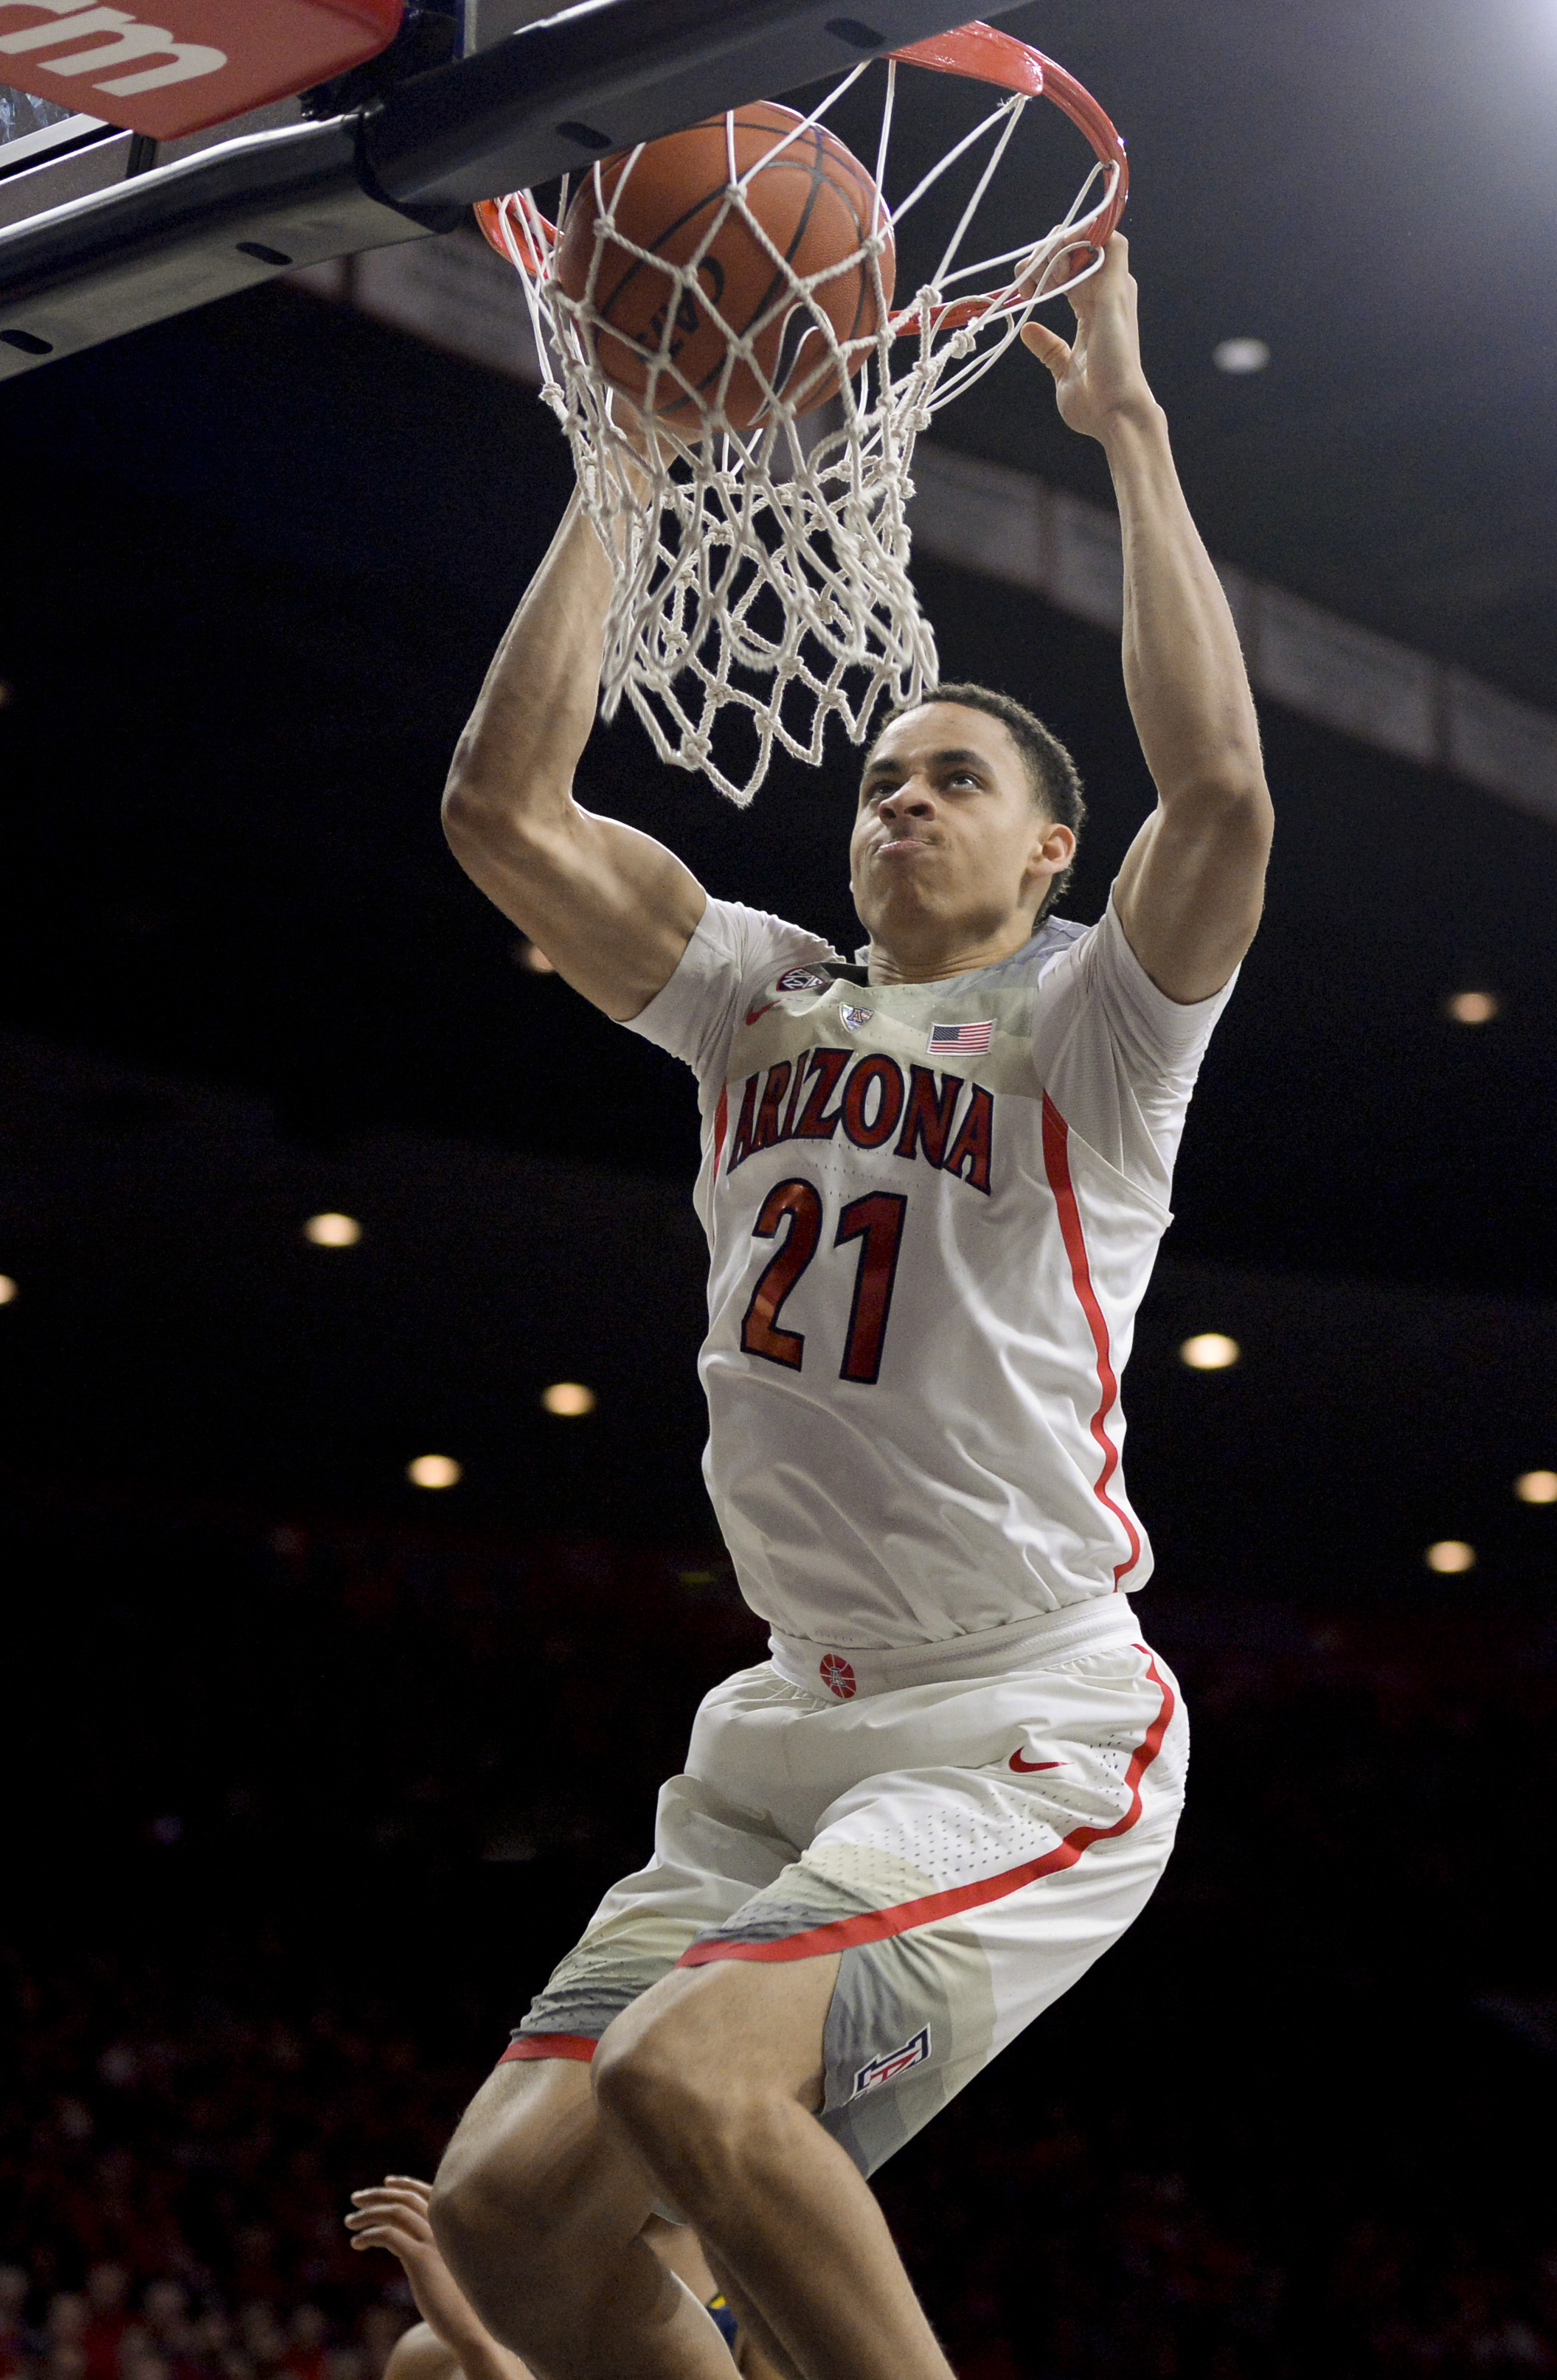 Feb 11, 2017; Tucson, AZ, USA; Arizona Wildcats center Chance Comanche (21) dunks the ball during the second half against the California Golden Bears at McKale Center. Arizona won 62-57. Mandatory Credit: Casey Sapio-USA TODAY Sports